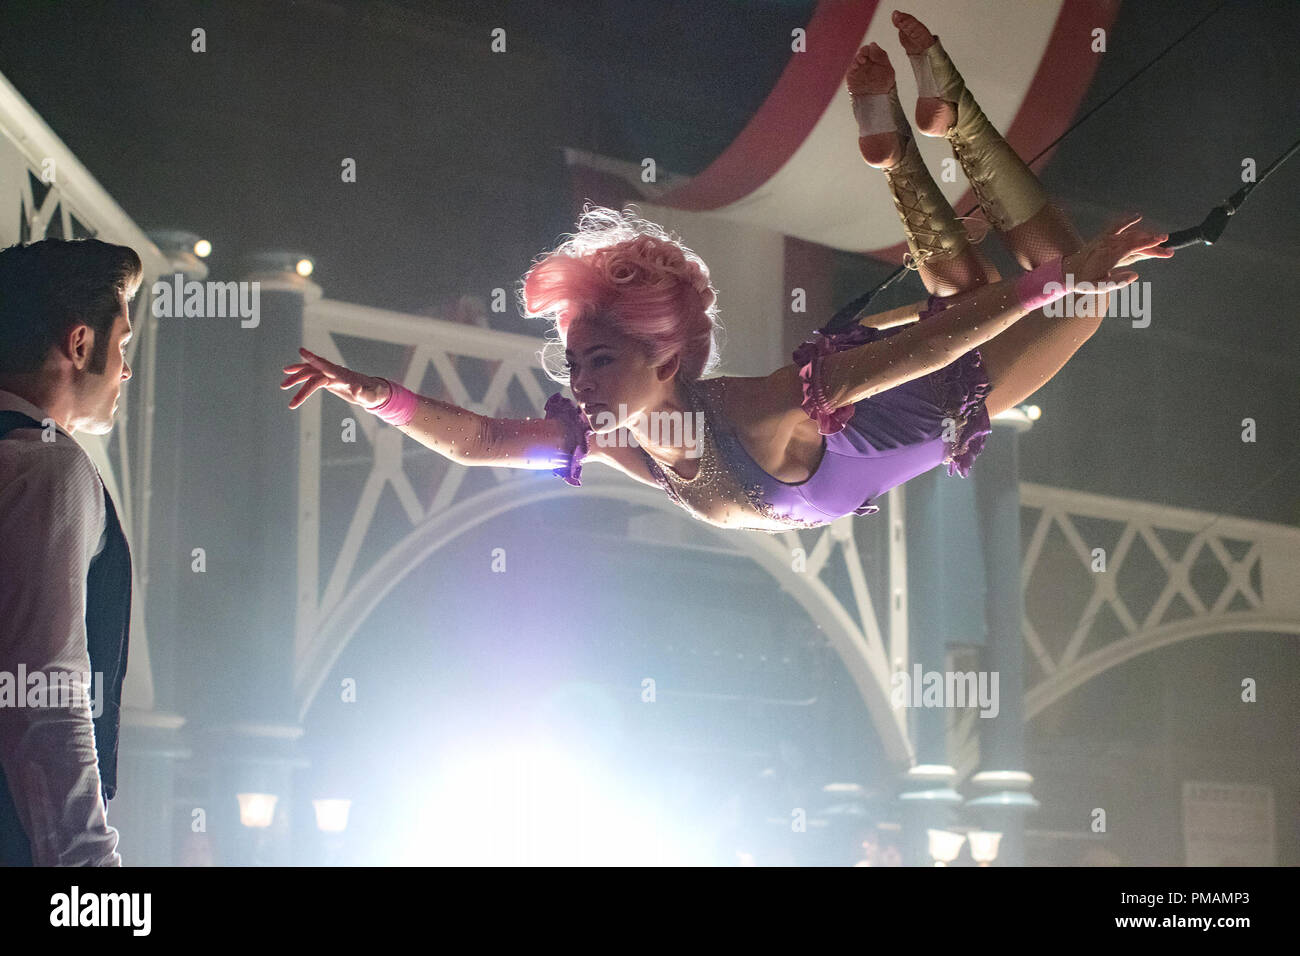 Philip (Zac Efron) is entranced by Anne's (Zendaya) trapeze artistry in Twentieth Century Fox's THE GREATEST SHOWMAN. (2017) - Stock Image